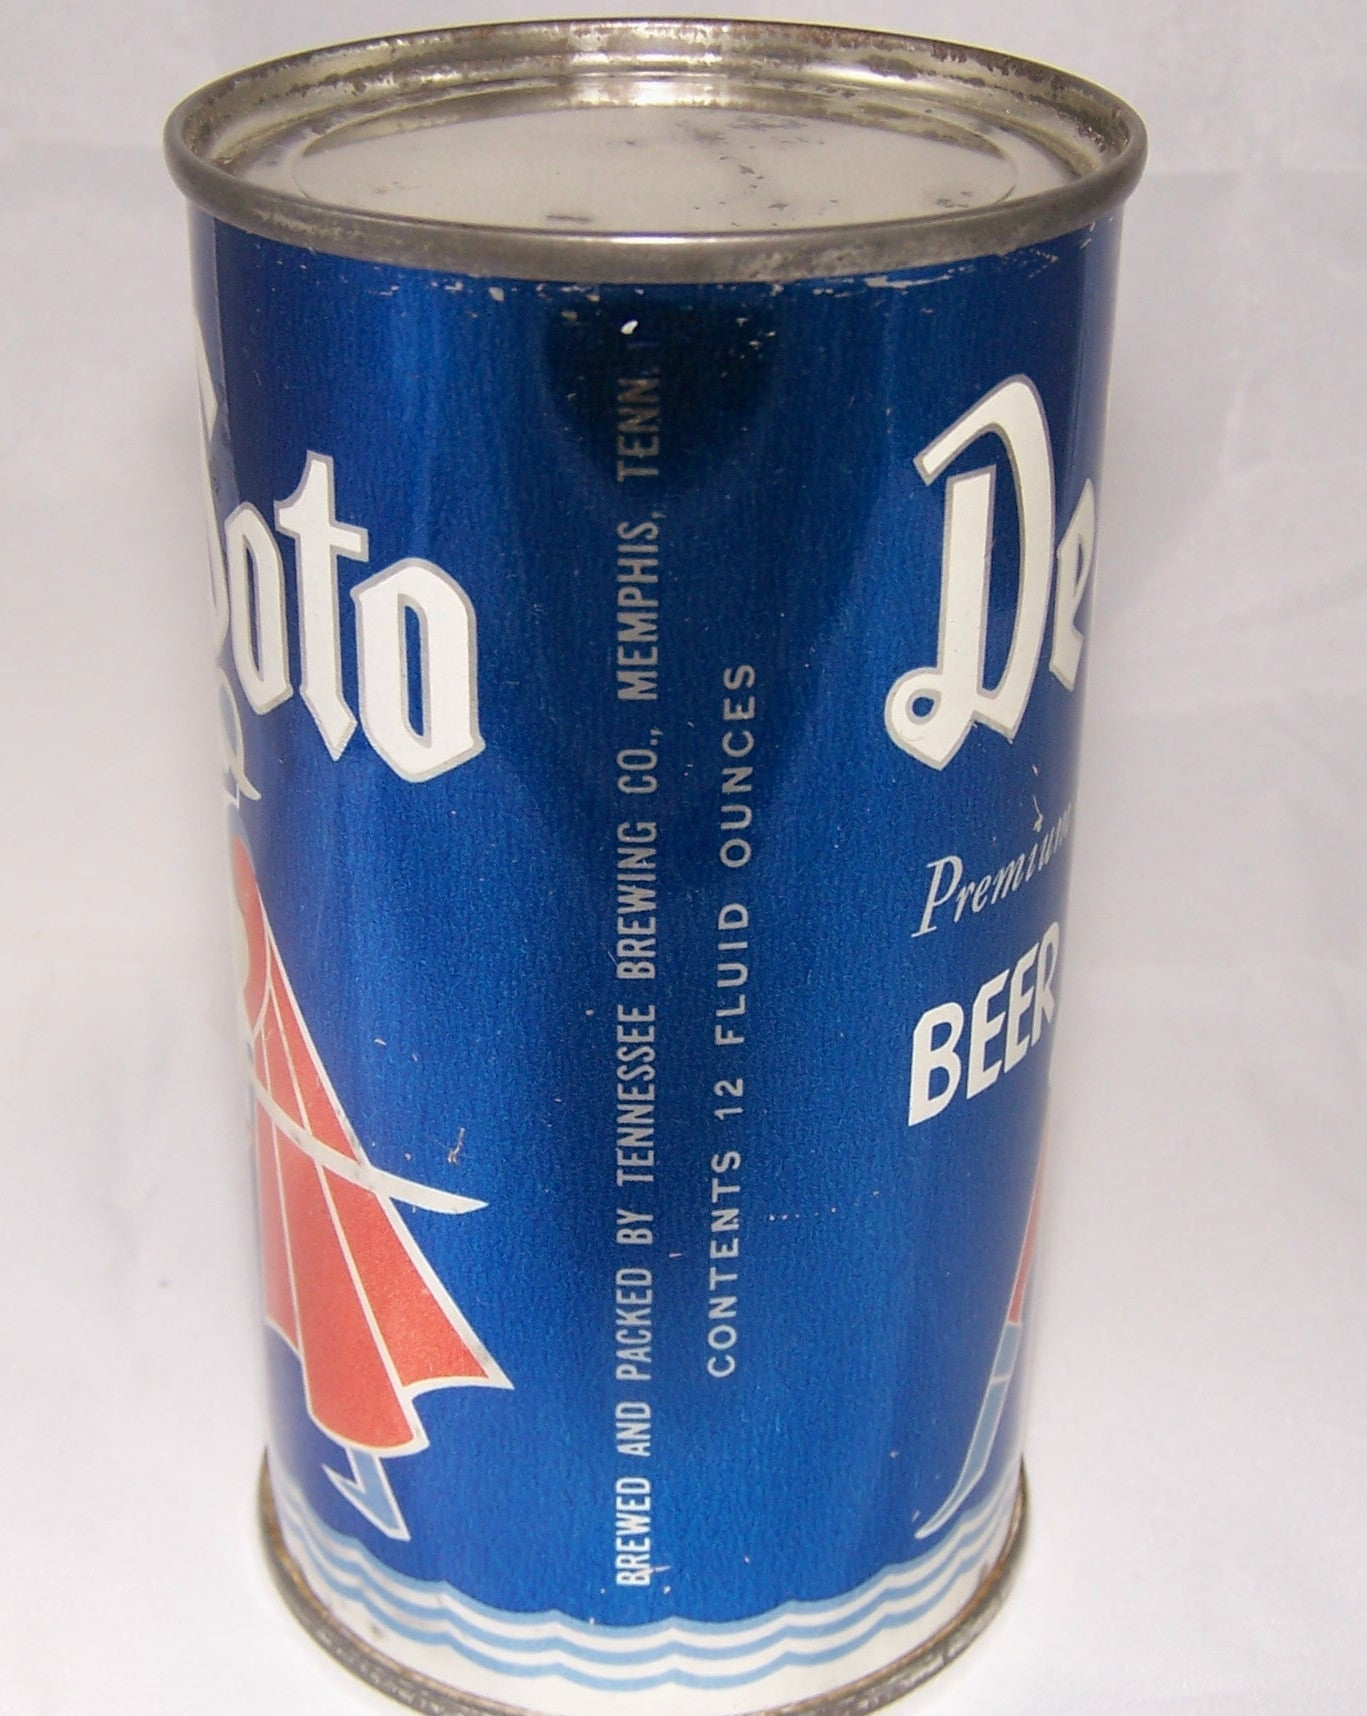 De Soto Premium Beer, USBC 53-28, Grade 1 to 1/1+ Sold on 5/14/15